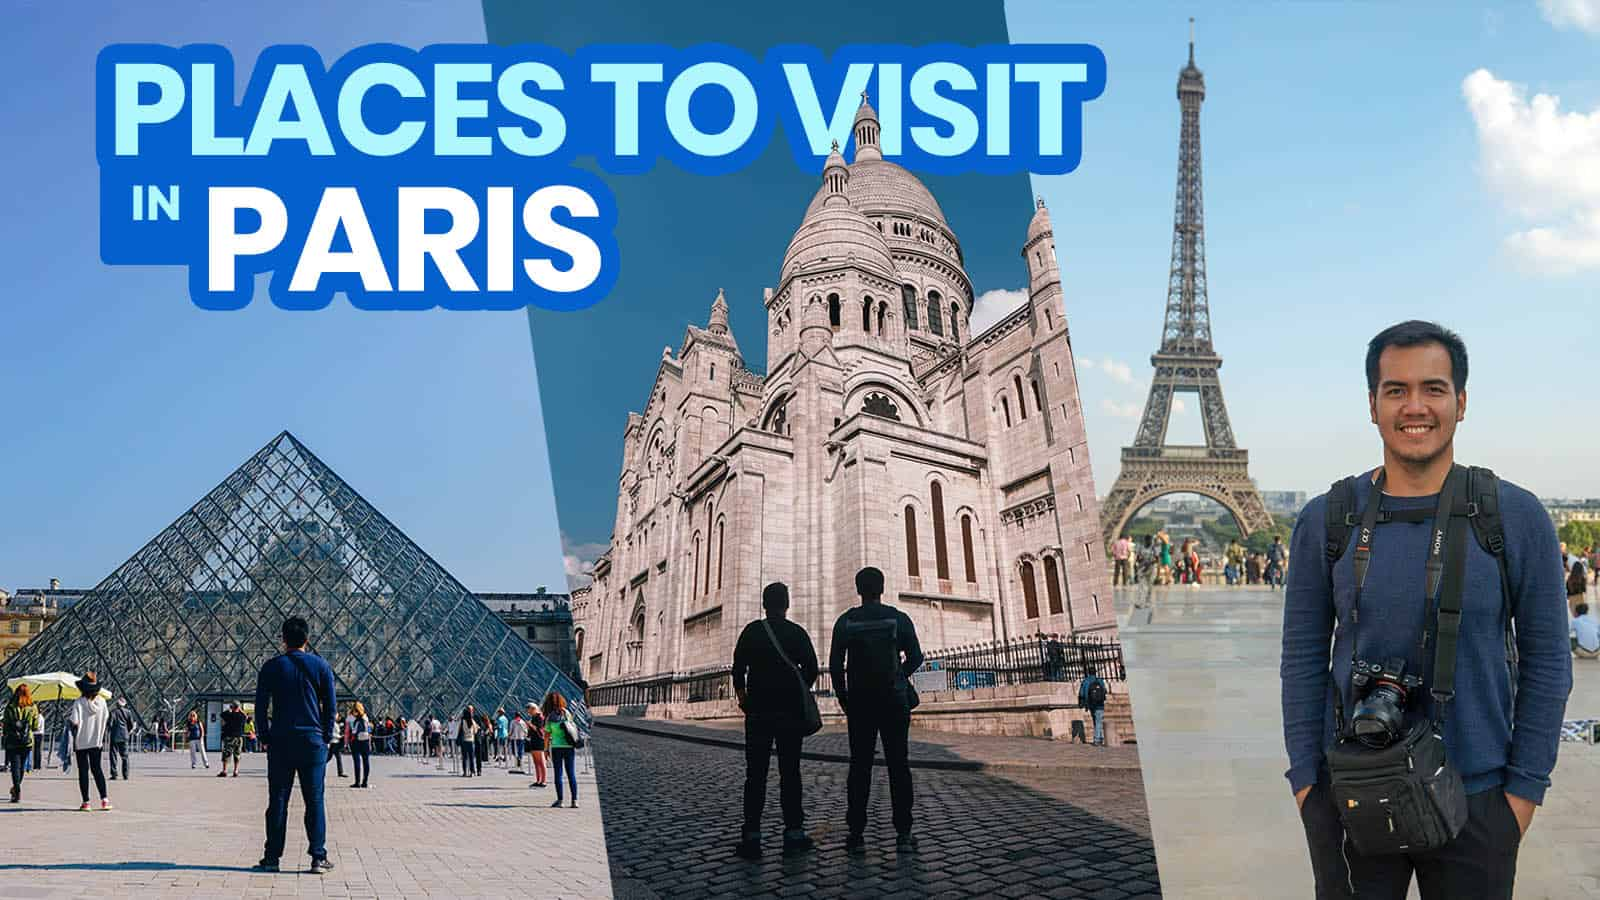 PARIS: 30 Best Things to Do & Places to Visit